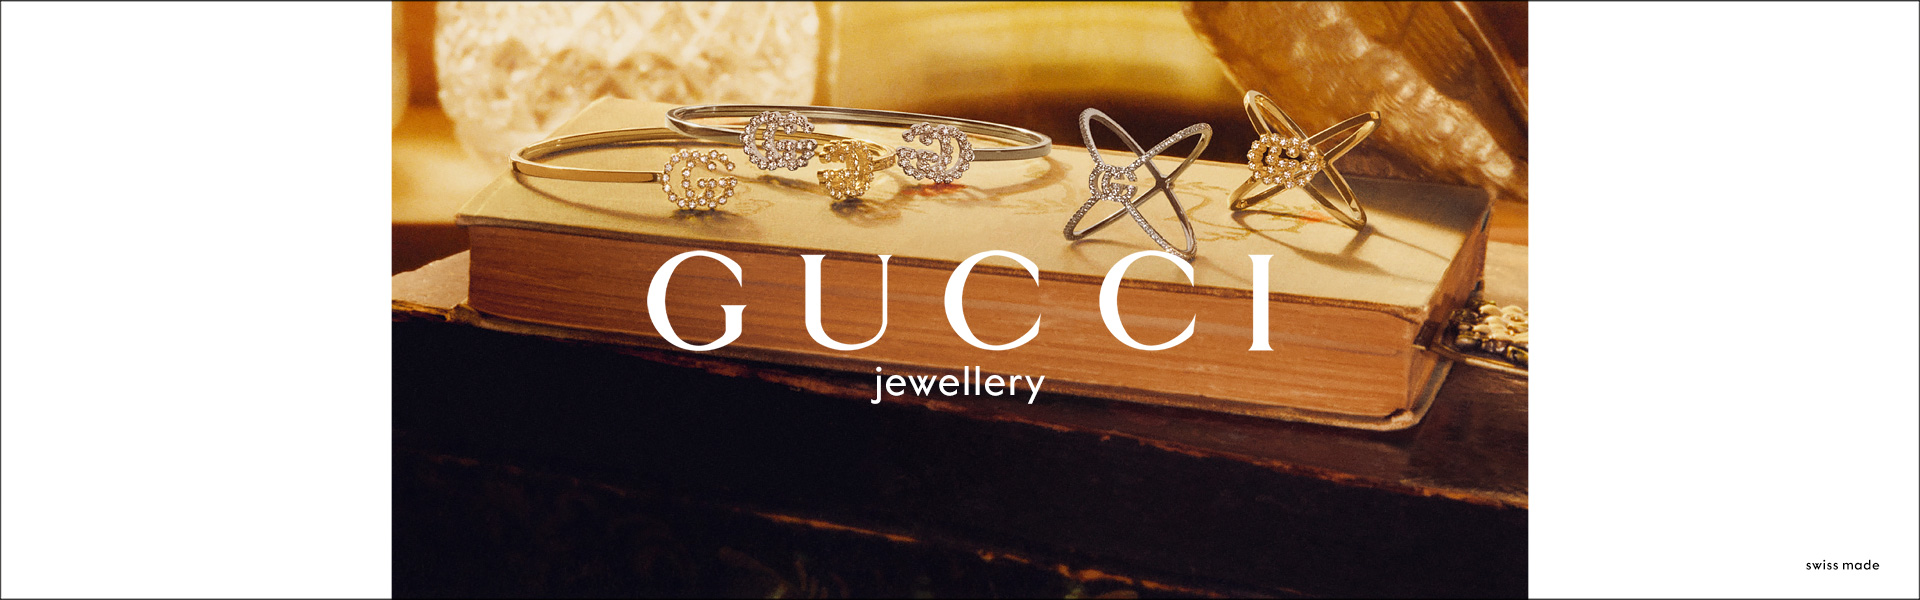 Oshawa Jewellery Inc. Gucci Jewellery